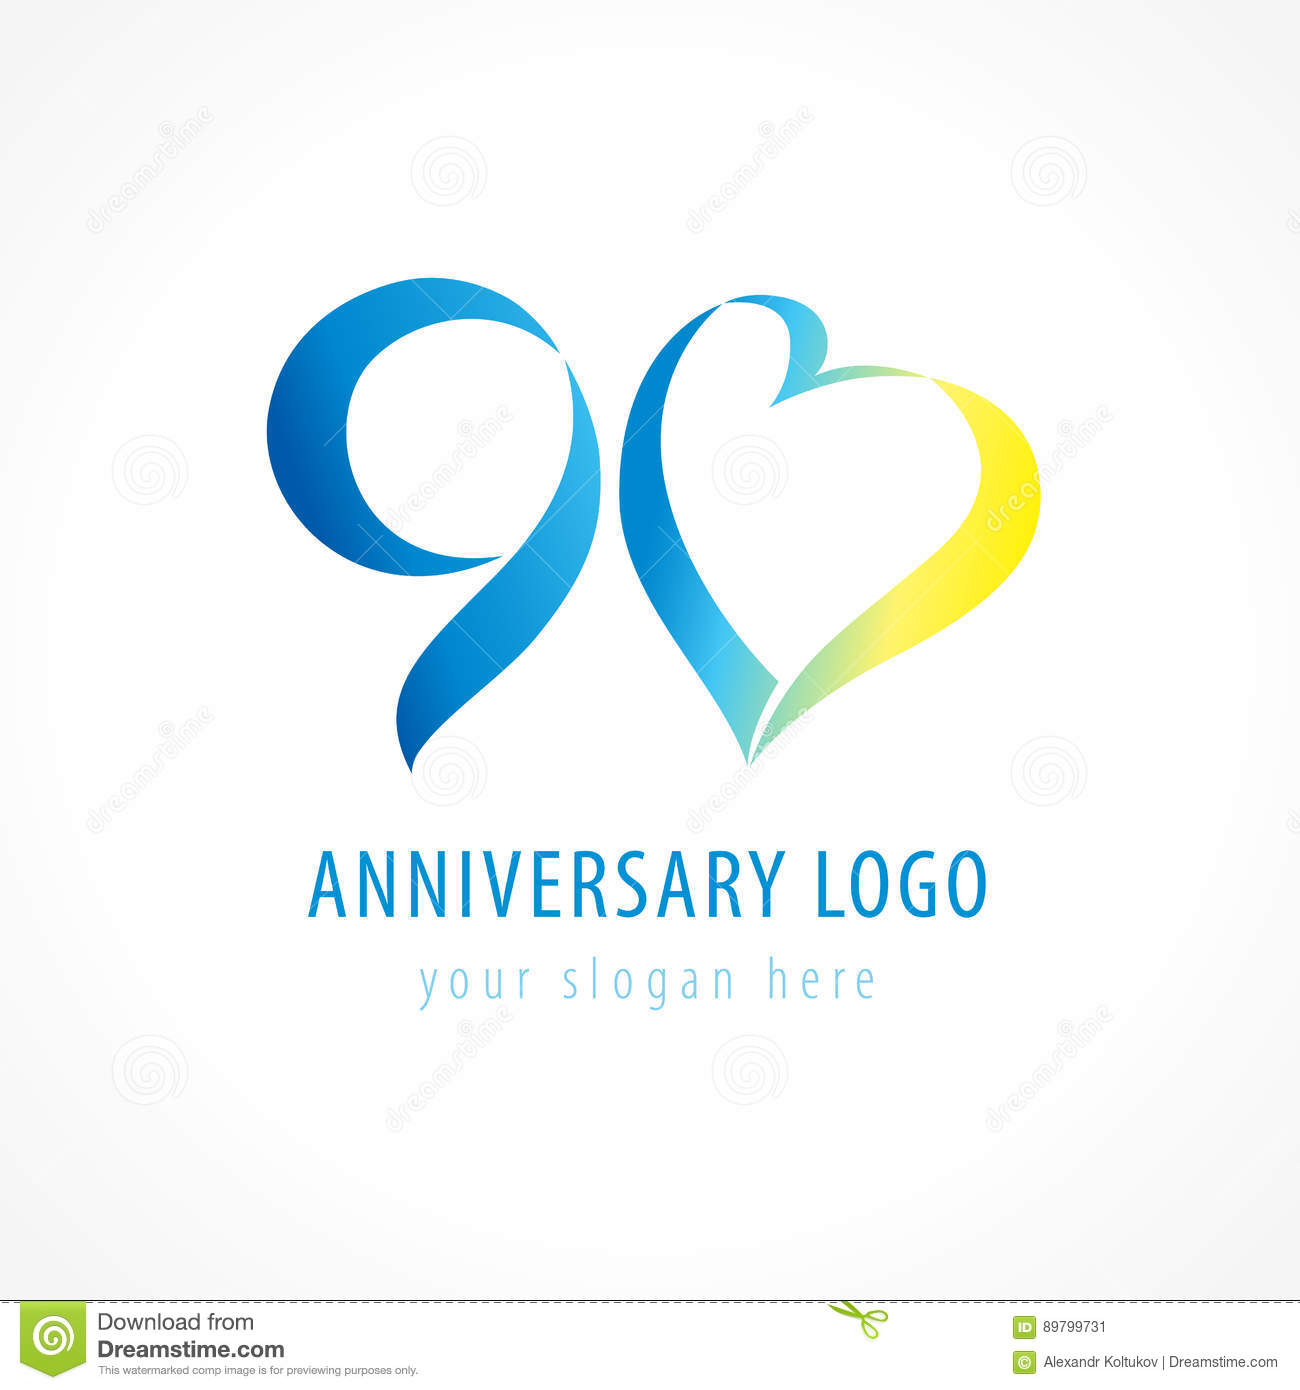 Anniversary 90 Years Old Stock Vector Illustration Of Greeting